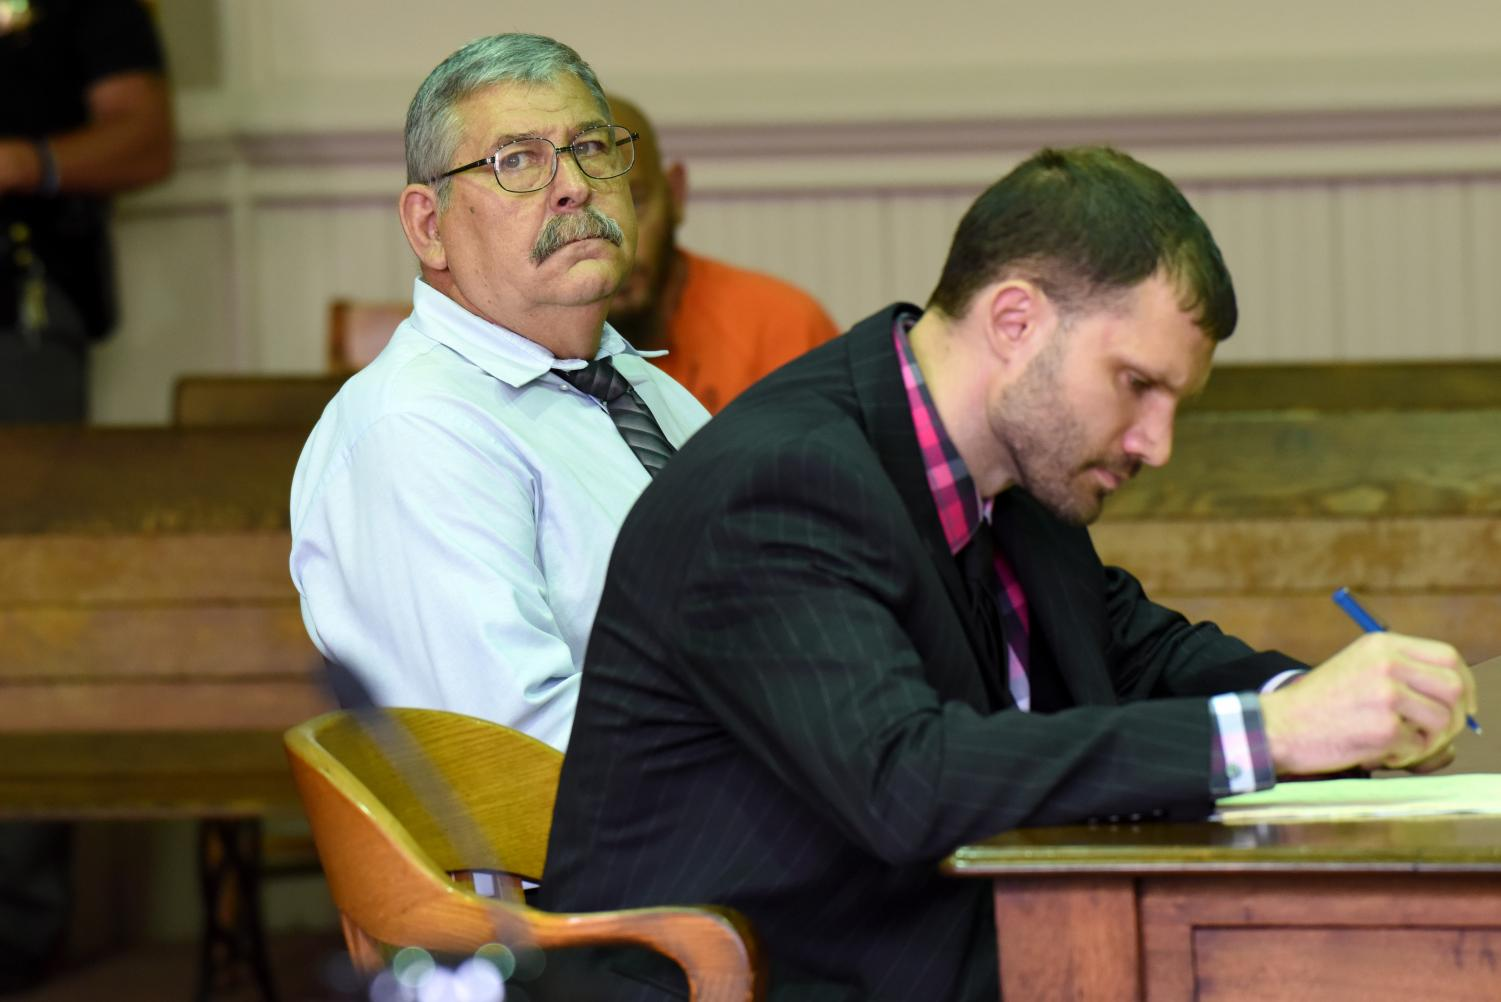 Gary McNerney turns his attention to Assistant Prosecuting Attorney Ron Welch during his sentencing hearing on May 29.